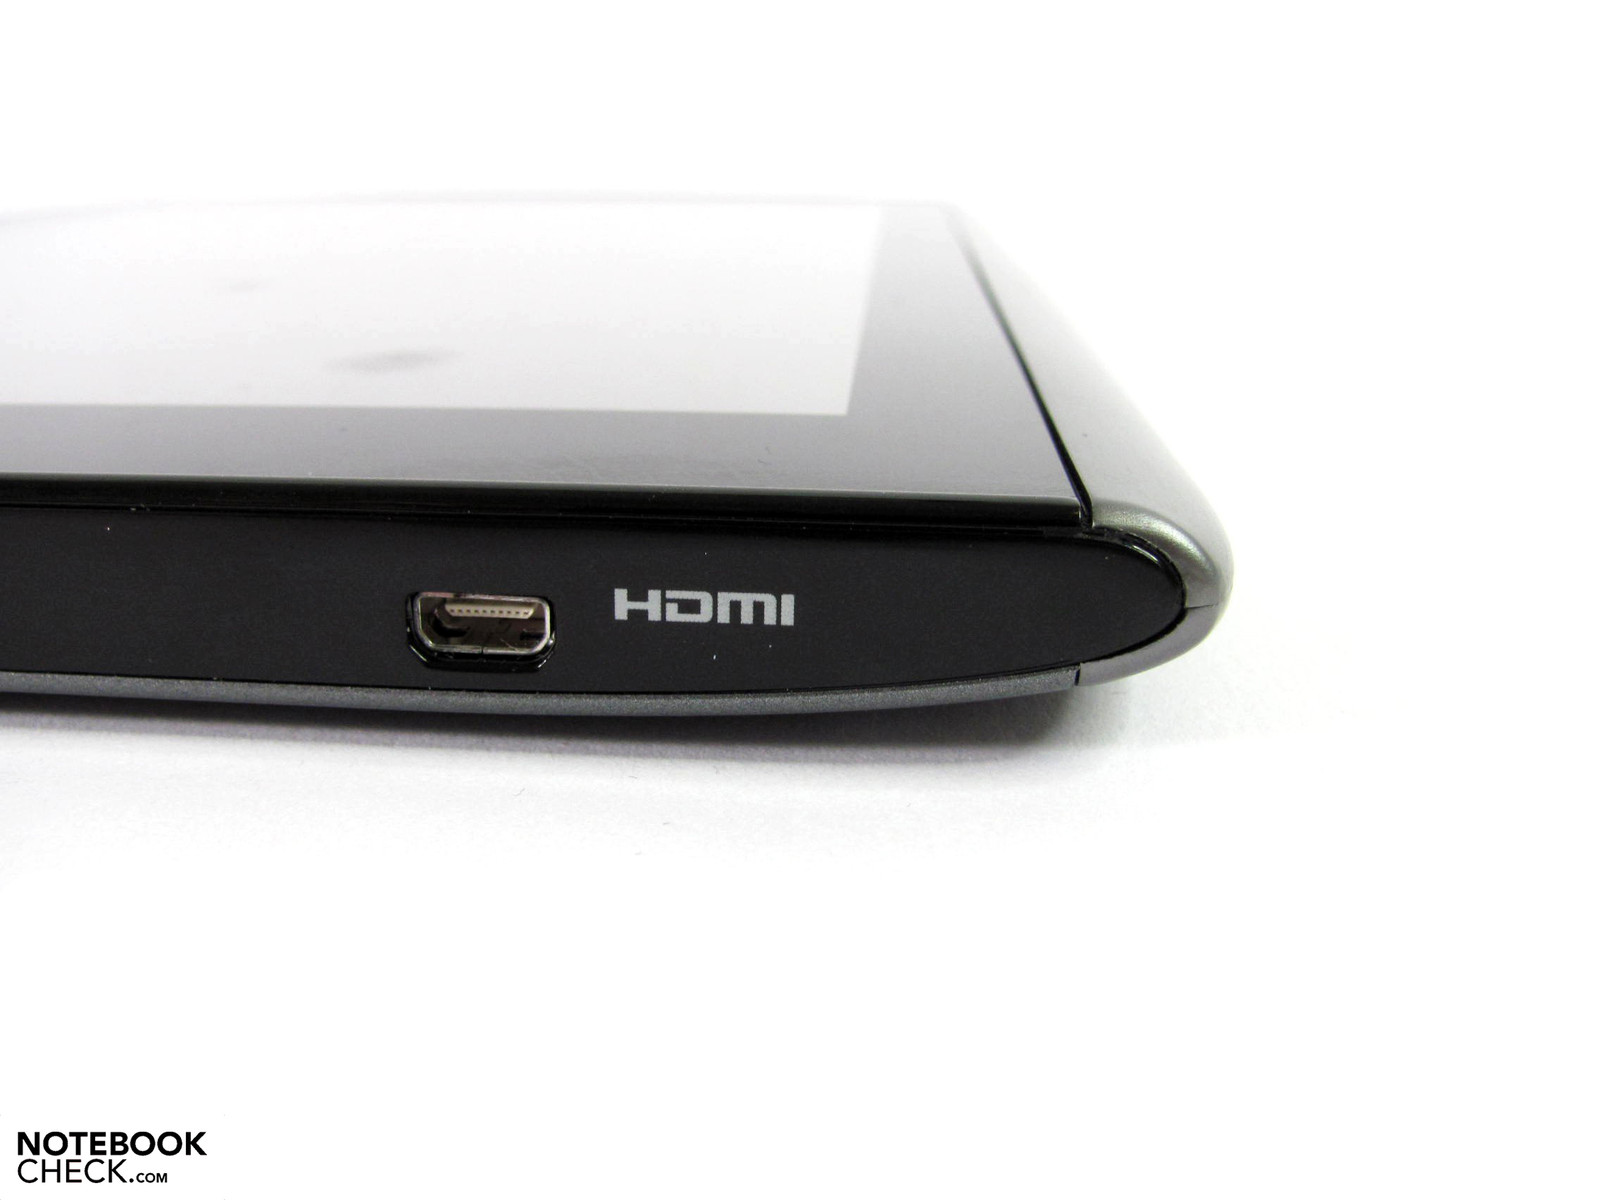 Review Acer Iconia Tab A500 Tablet/MID